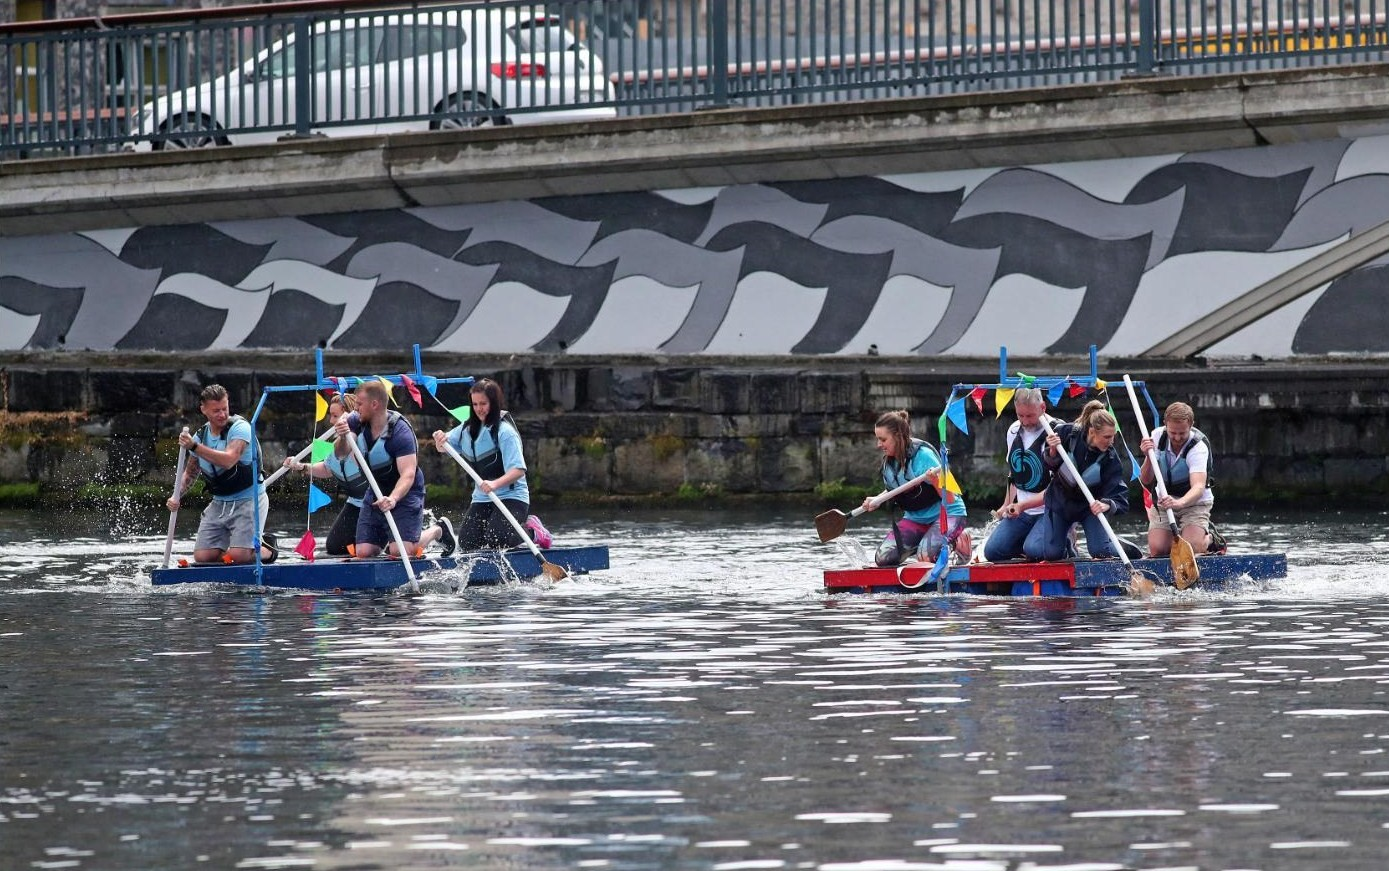 Racin' in the Basin. The local Bank of Ireland and Credit Union battle it out in the second heat of the raft challenge. The mural in the back ground was painted by volunteers from the Docklands Business Forum two weeks before the event.